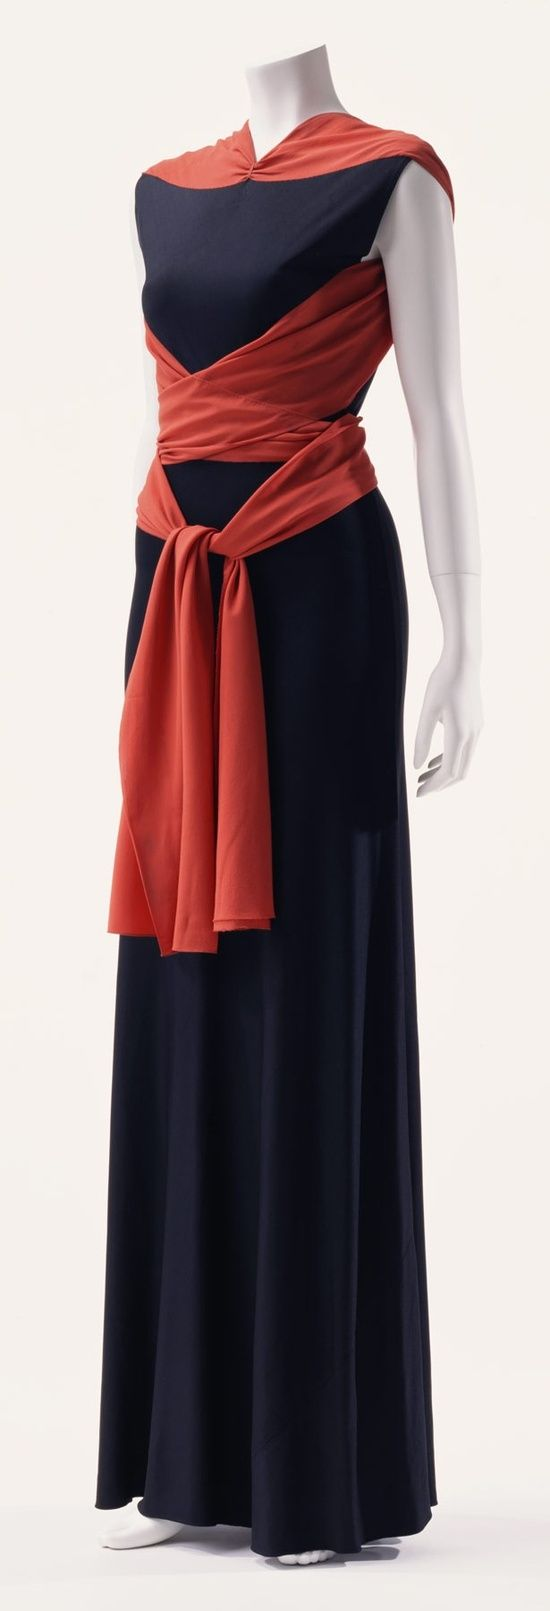 Maravilloso!!! ❤ Vionnet Dress - c- 1933 - by Madeleine Vionnet, France - Black rayon jersey one-piece dress; vermillion silk crepe sash; bias cut - Gift of the Estate of Tina Chaw - @~ Watsonette